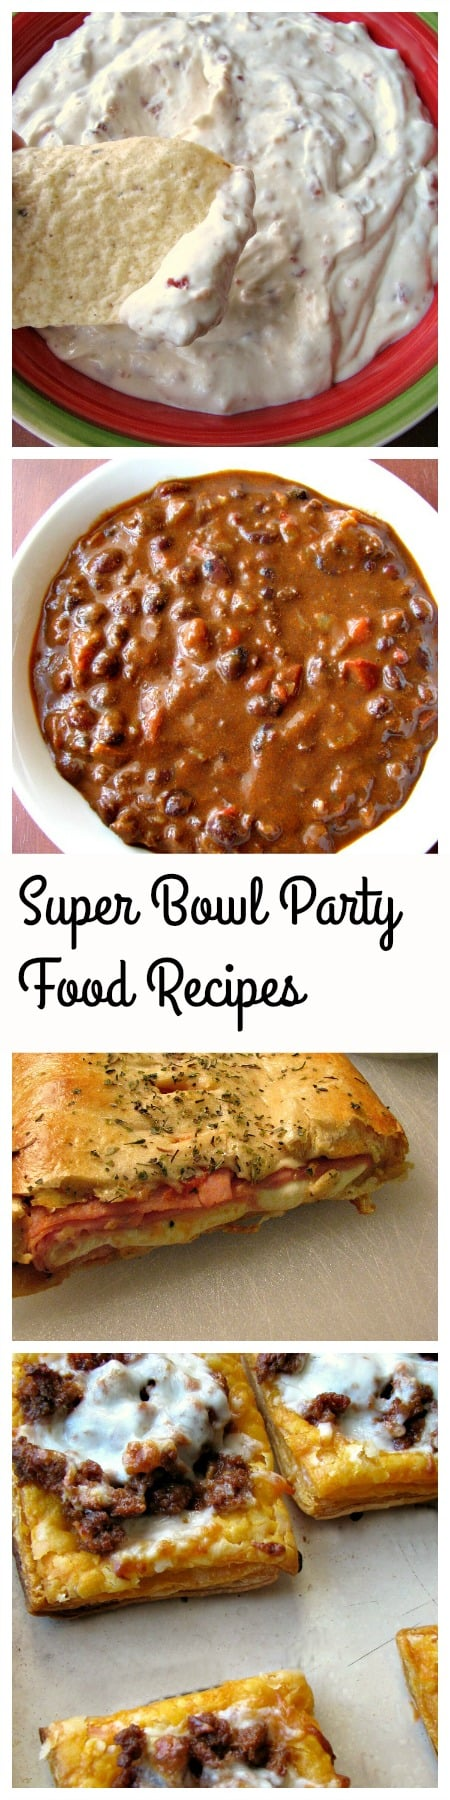 15 Winning Super Bowl Party Recipes including Chorizo and Black Bean Chili, Ham and Cheese Crescent Roll Stromboli, Bacon Ranch Cheddar Dip and more.